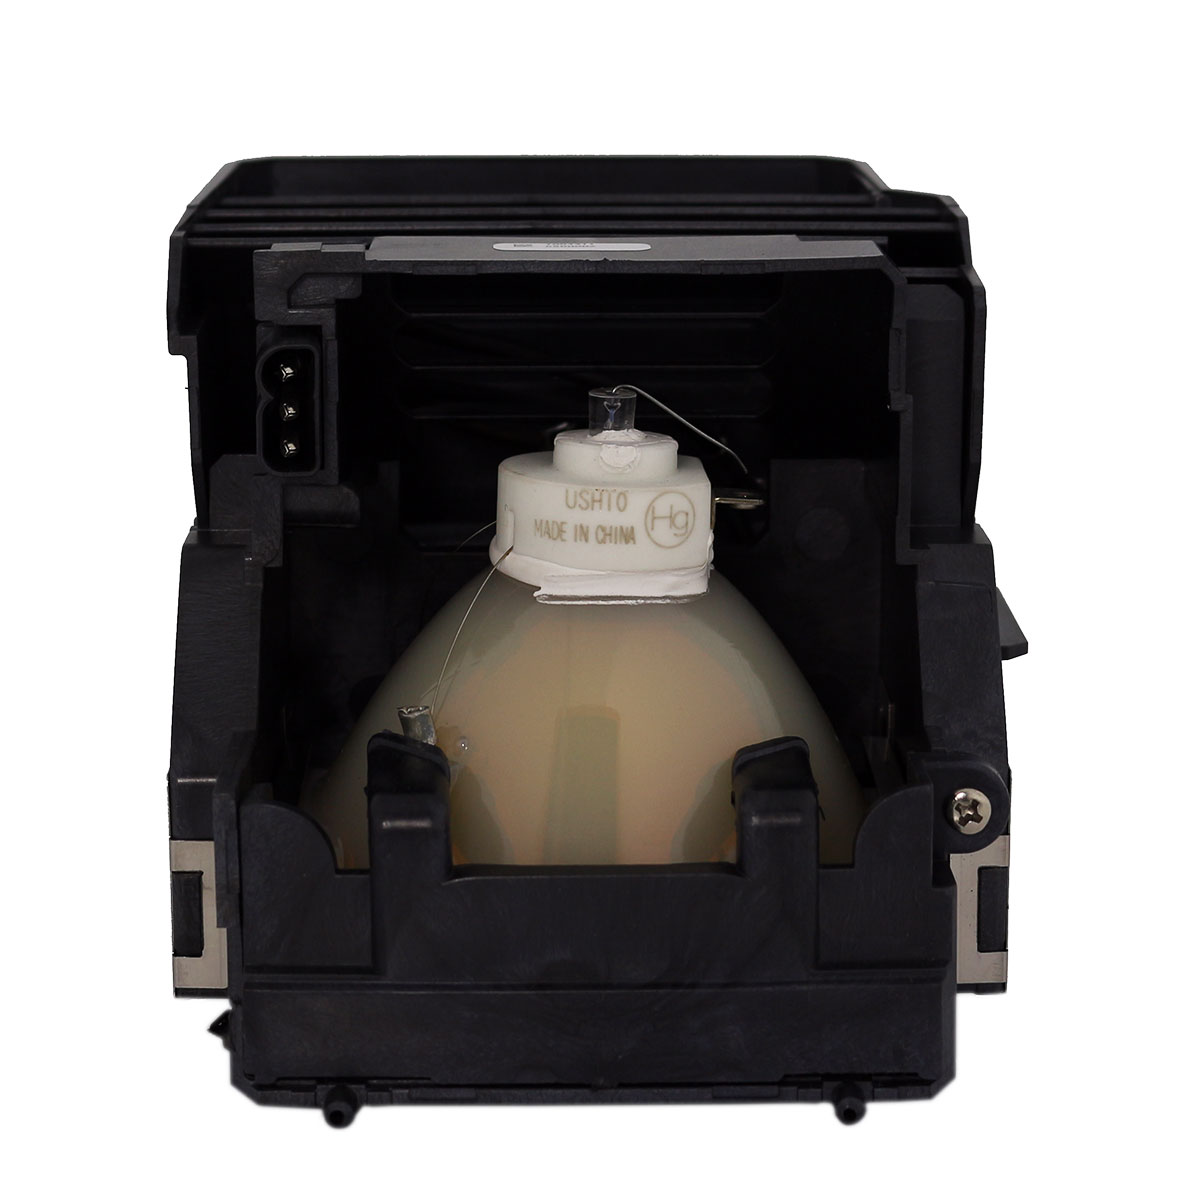 Original Ushio Projector Lamp Replacement for Eiki POA-LMP116 (Bulb Only) - image 3 of 5